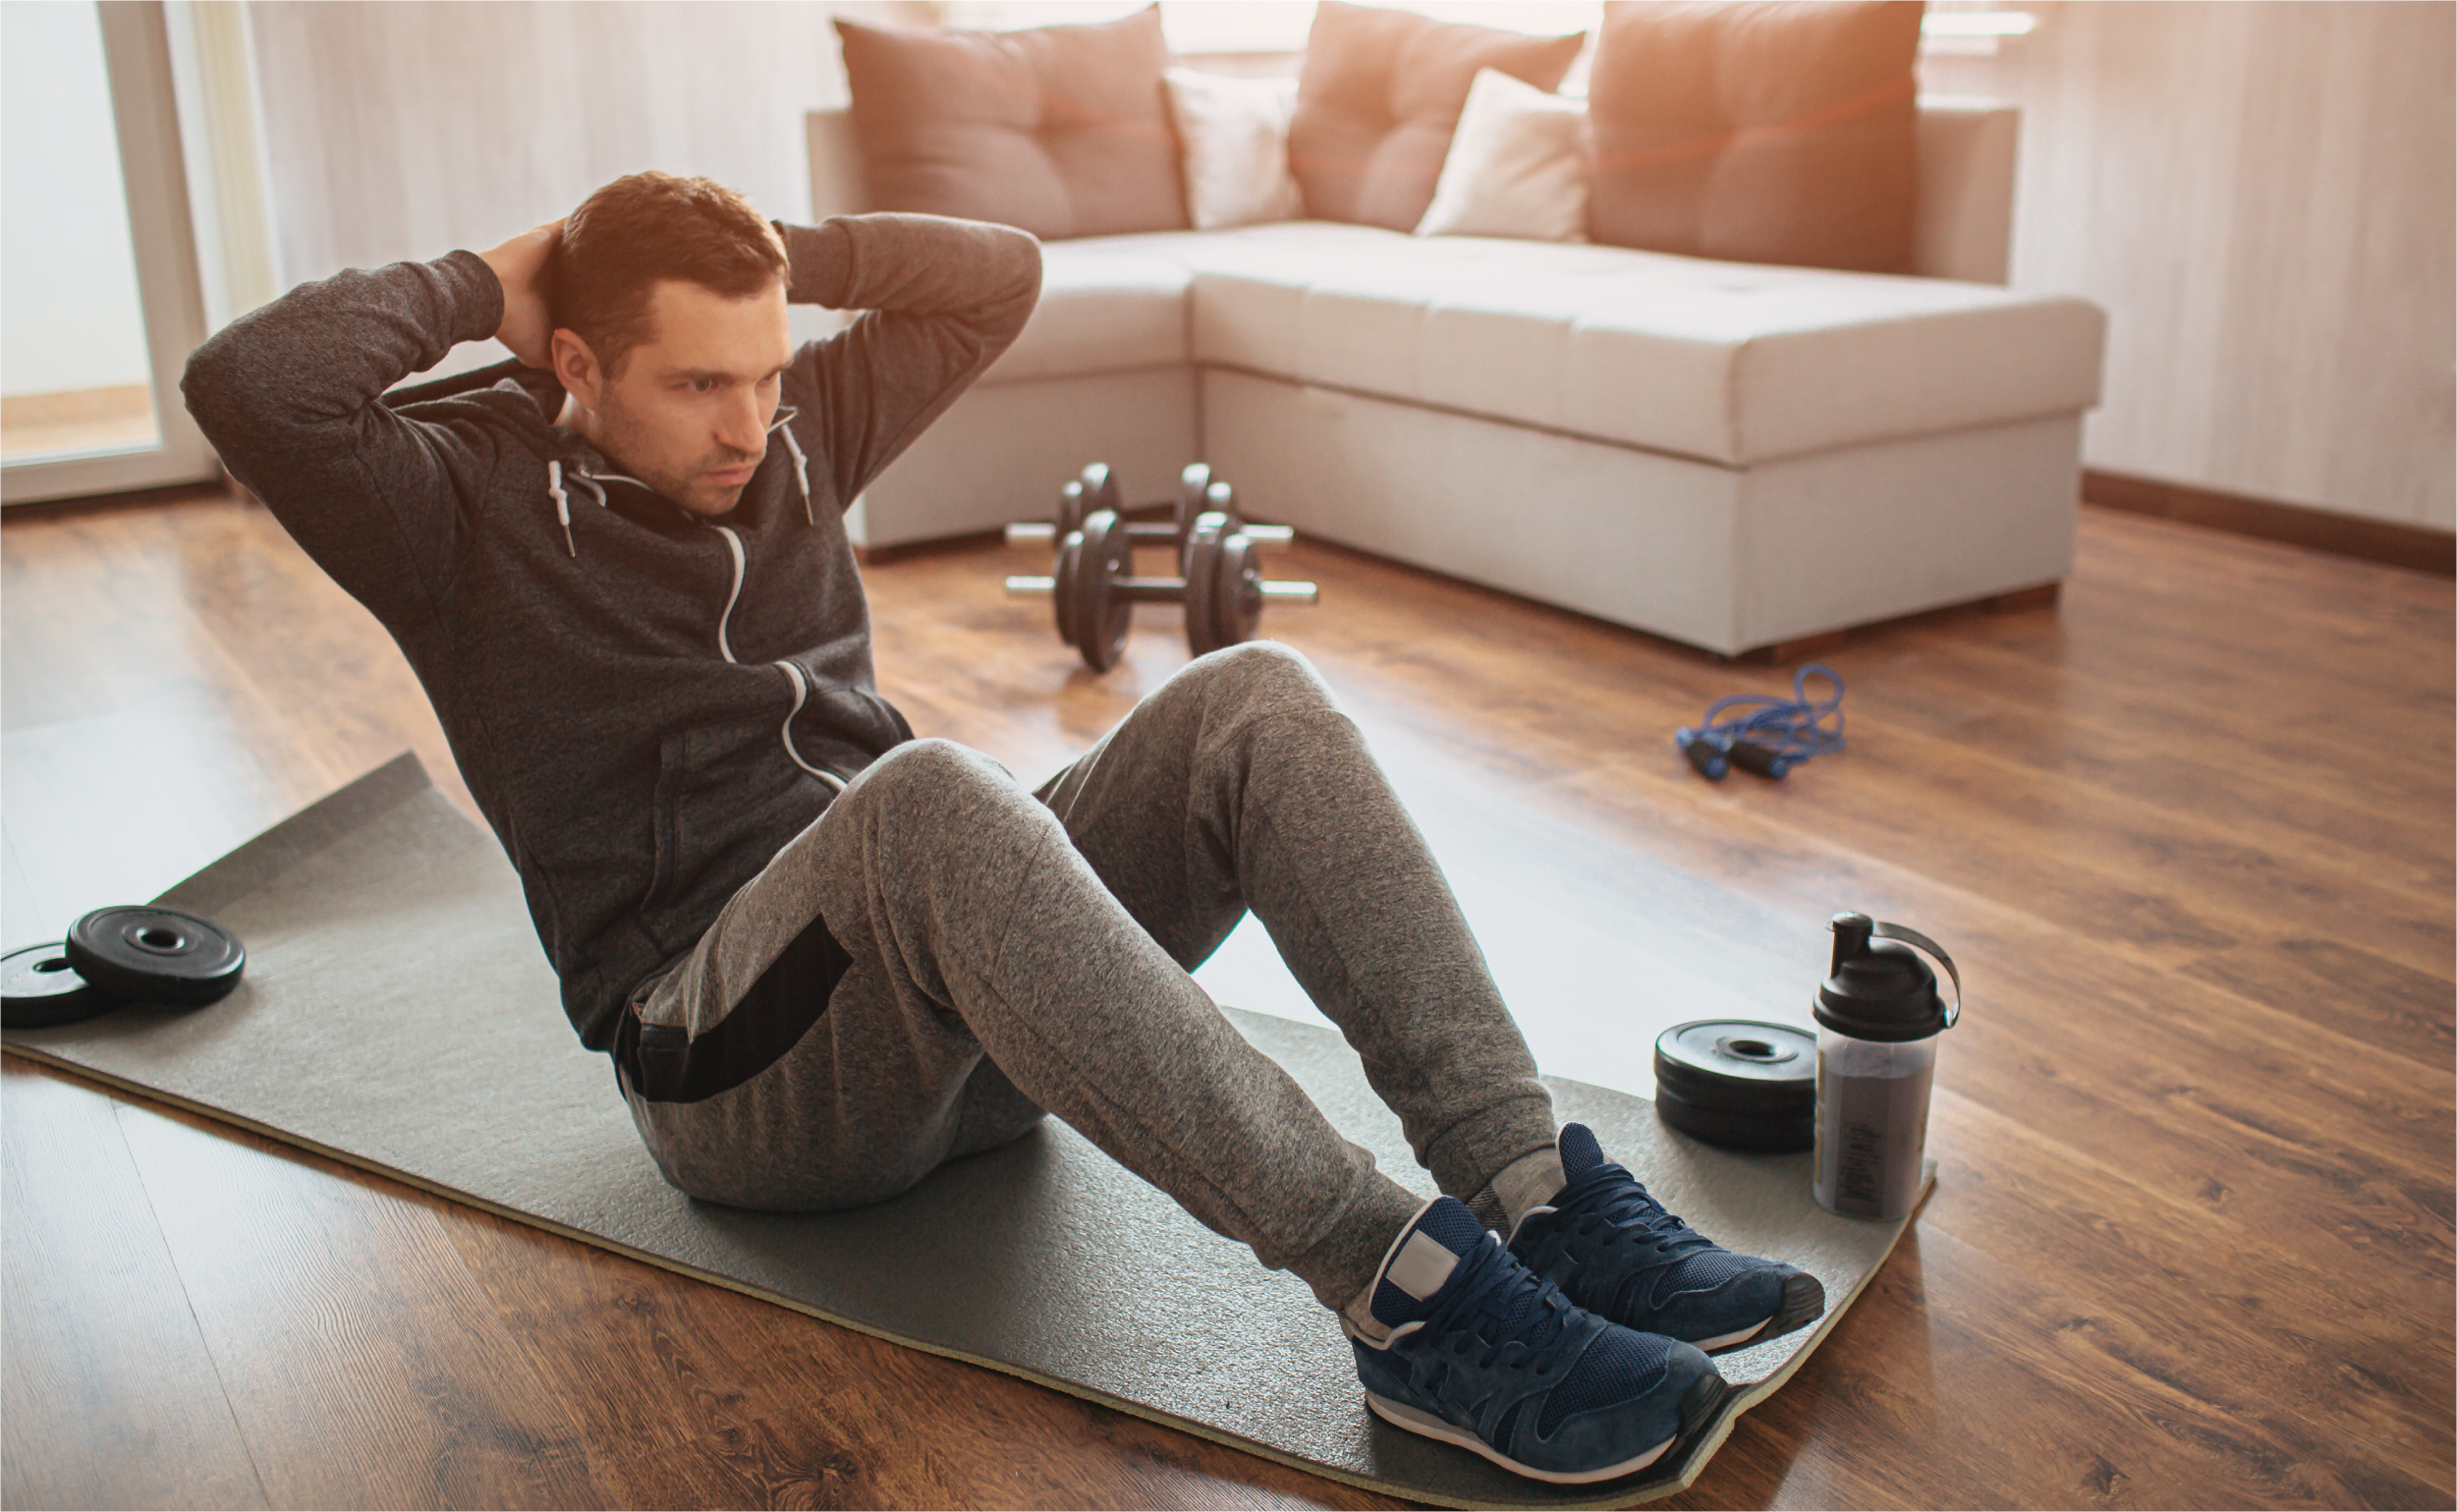 young-ordinary-man-go-sport-home-hardworking-freshman-sit-mat-abs-excercise-easy-start-workout-alone-apatment-beginner-action-sport-equipment-floor | Botkeeper